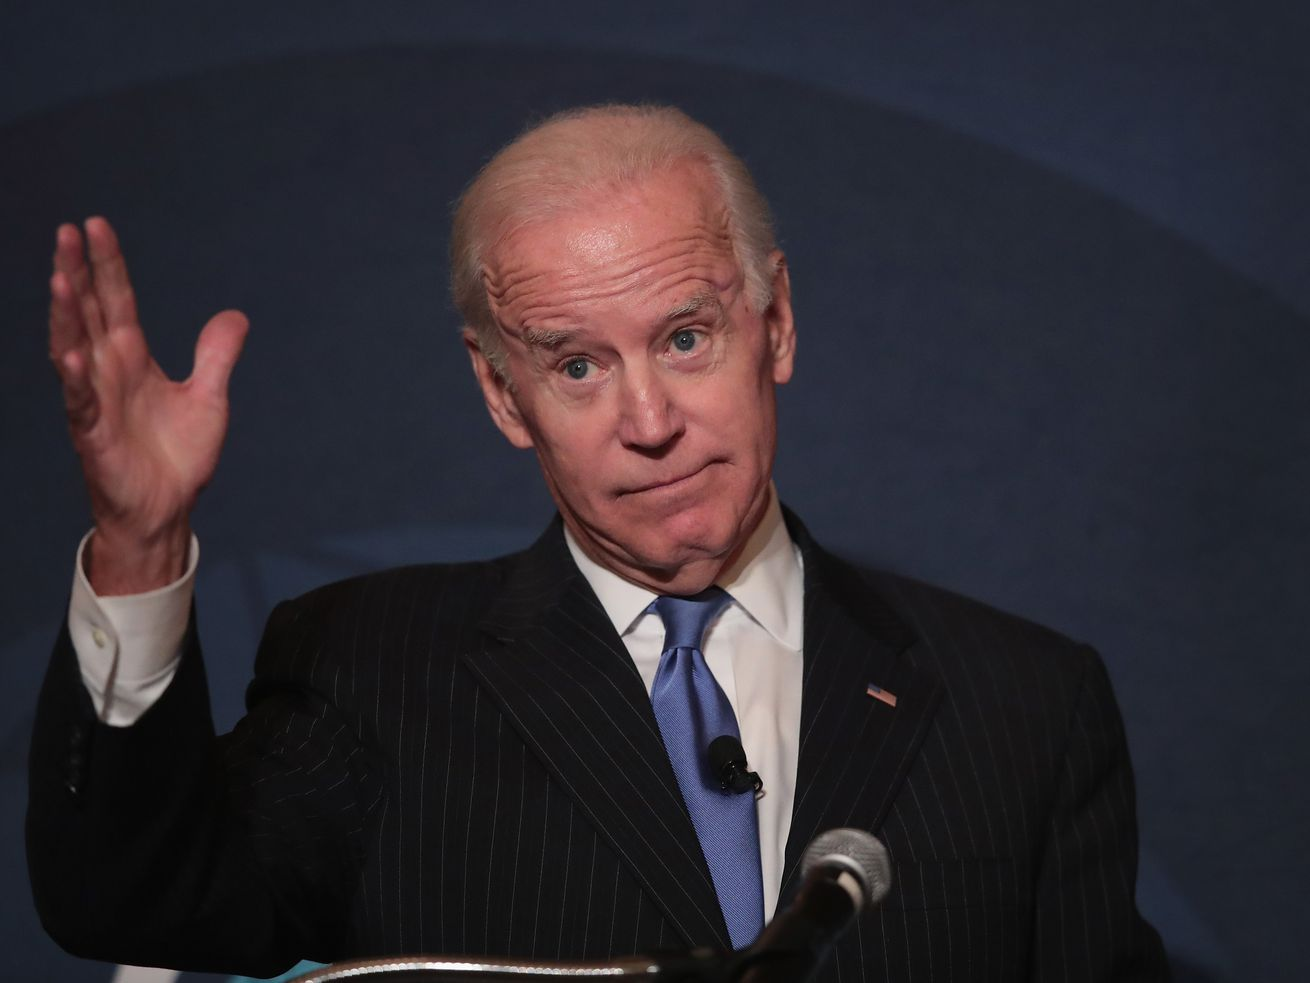 """Biden releases video blasting """"the Trump Doctrine"""" of foreign policy - The Reports"""